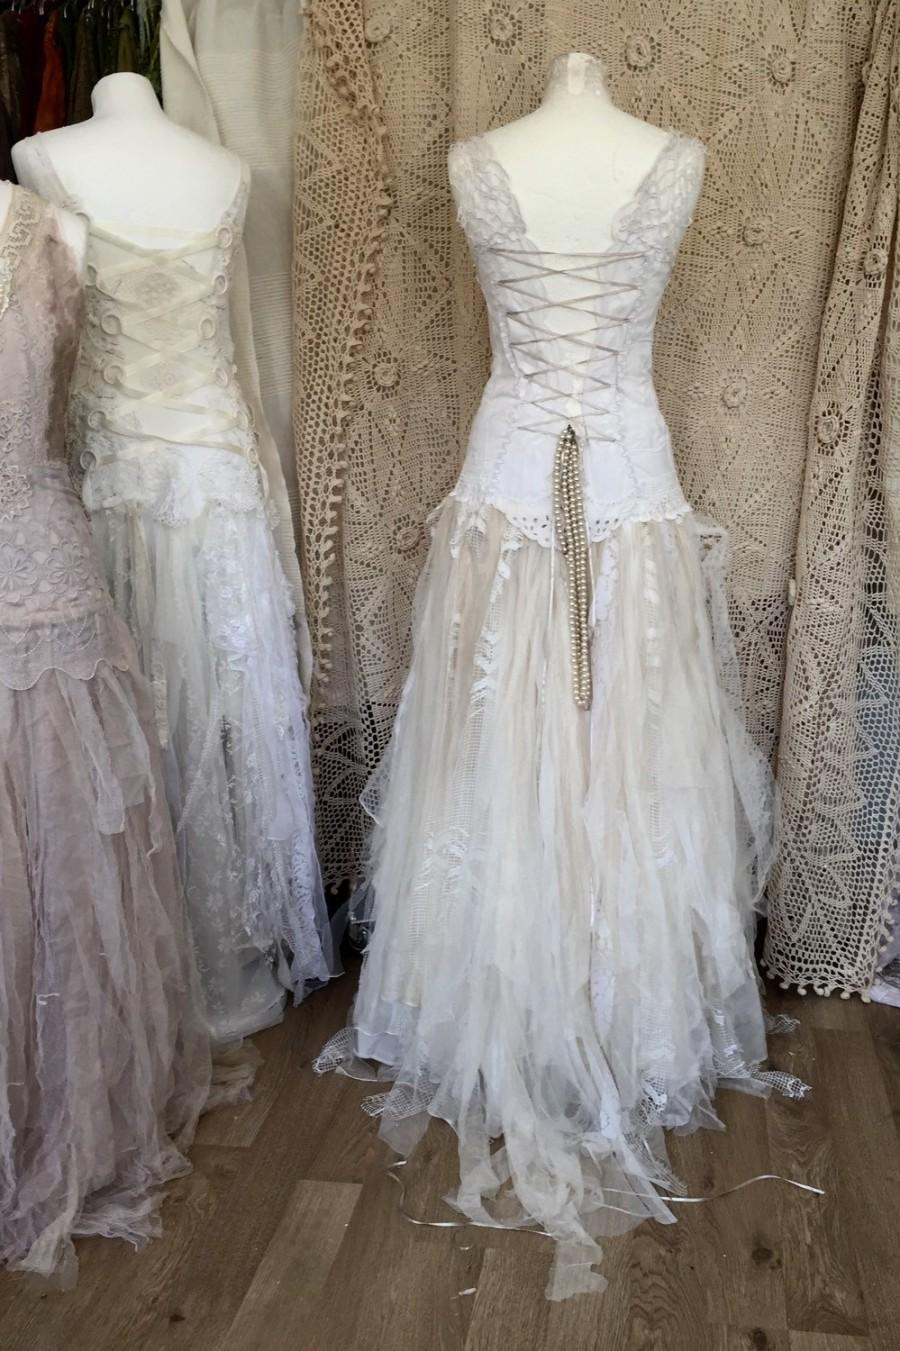 Special Wedding Dress Unique Boho Bridal Gown Statement Victorian White Lace Upcycled Doillies